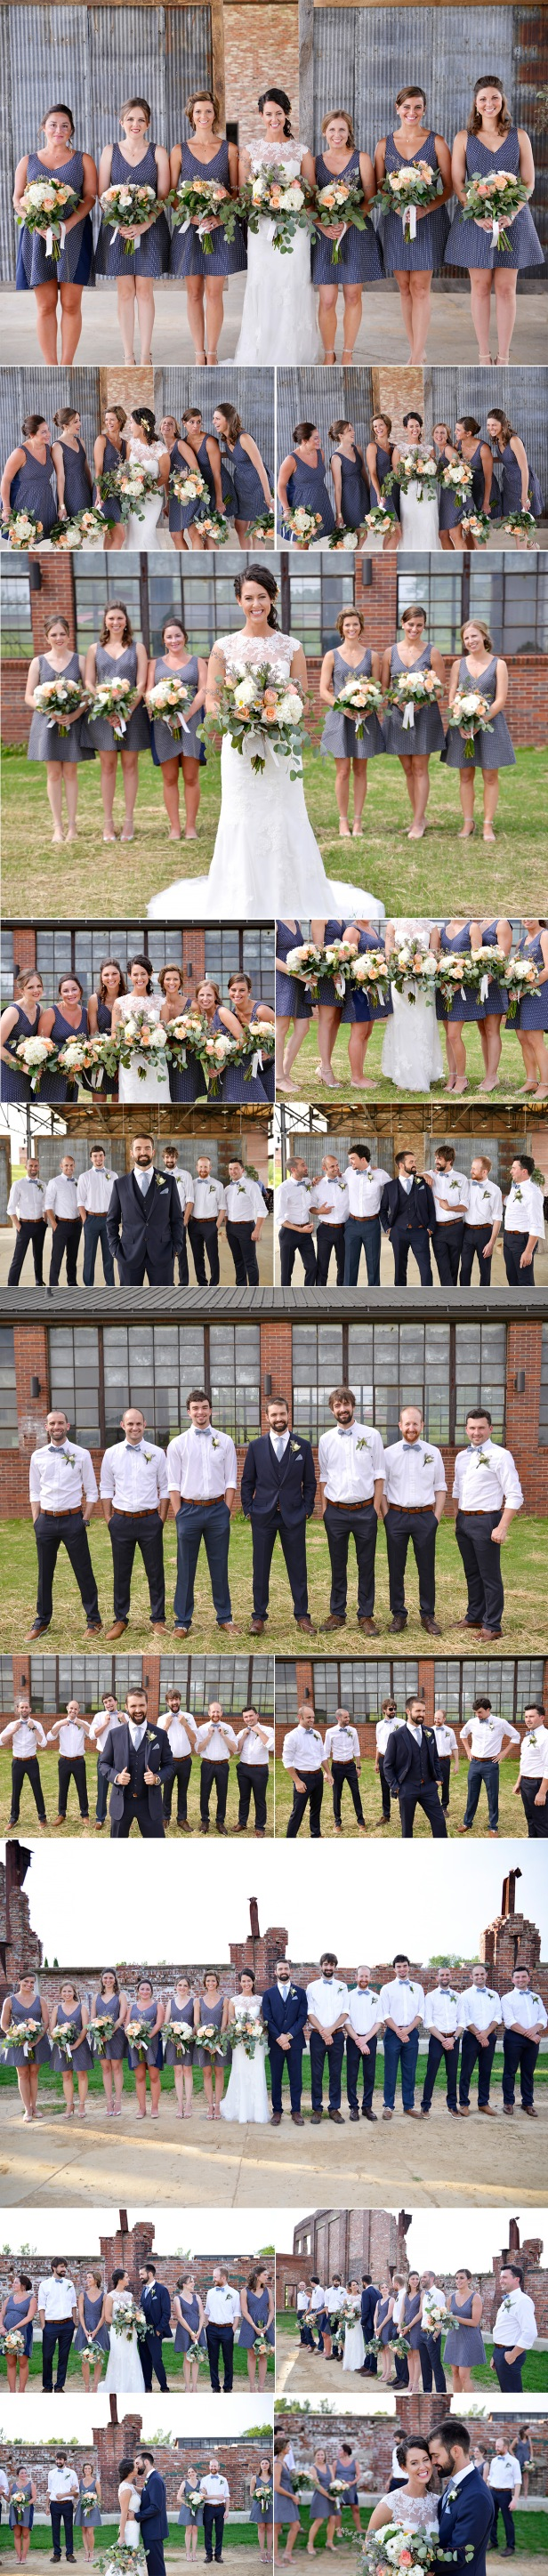 5-wedding in foundation park mt vernon ohio bridal party